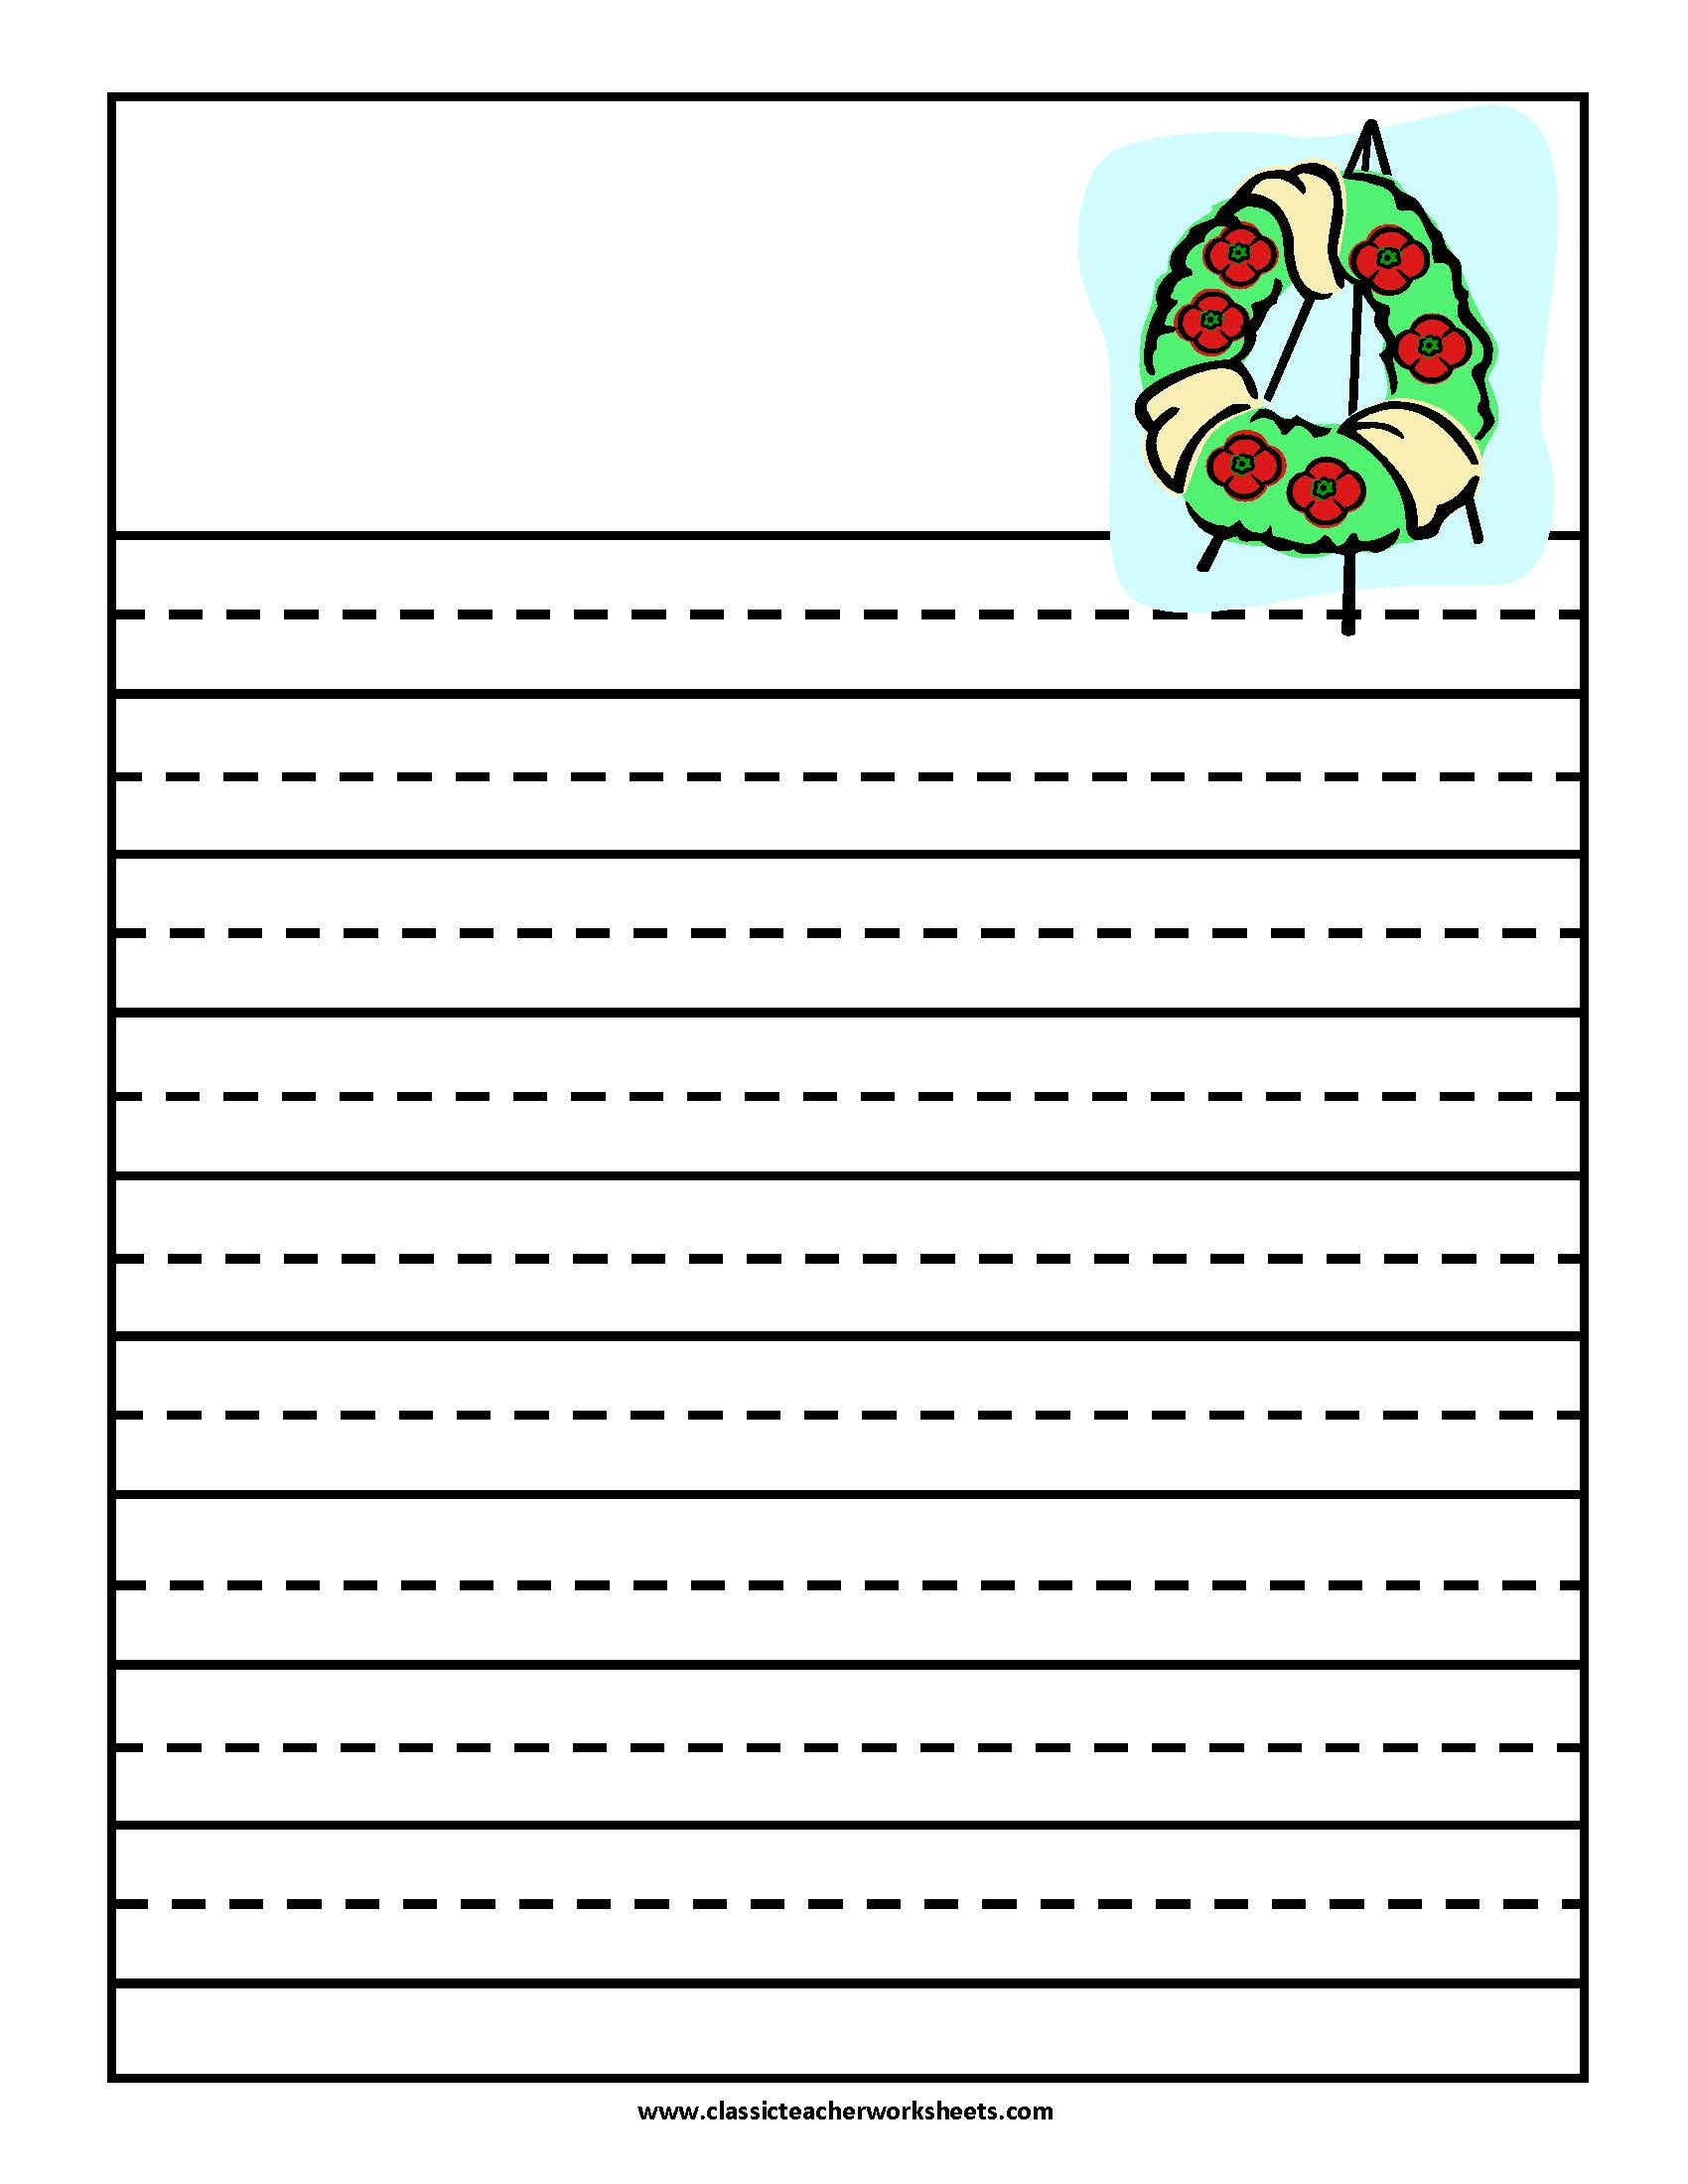 Writing Paper Remembrance Day Check Out Our Website Classicteacherworksheets For Our